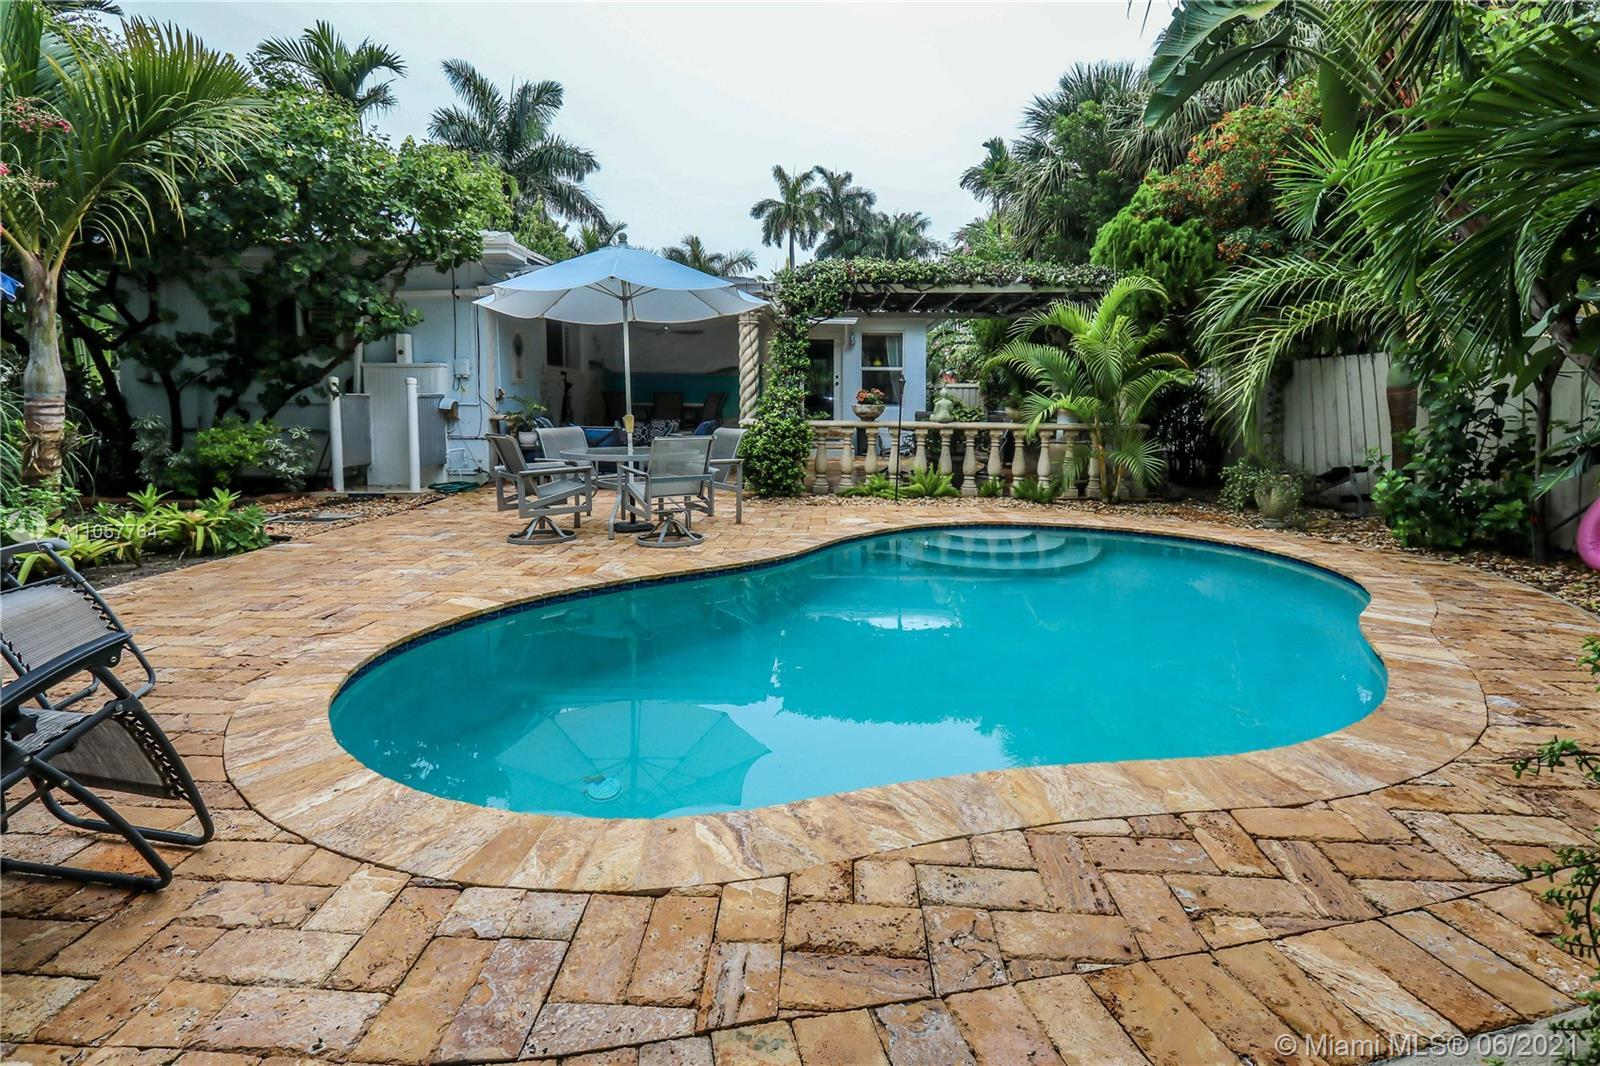 Impeccable, Bright & spacious 3/2 Pool home w/ private tropical paradise perfectly landscaped home l